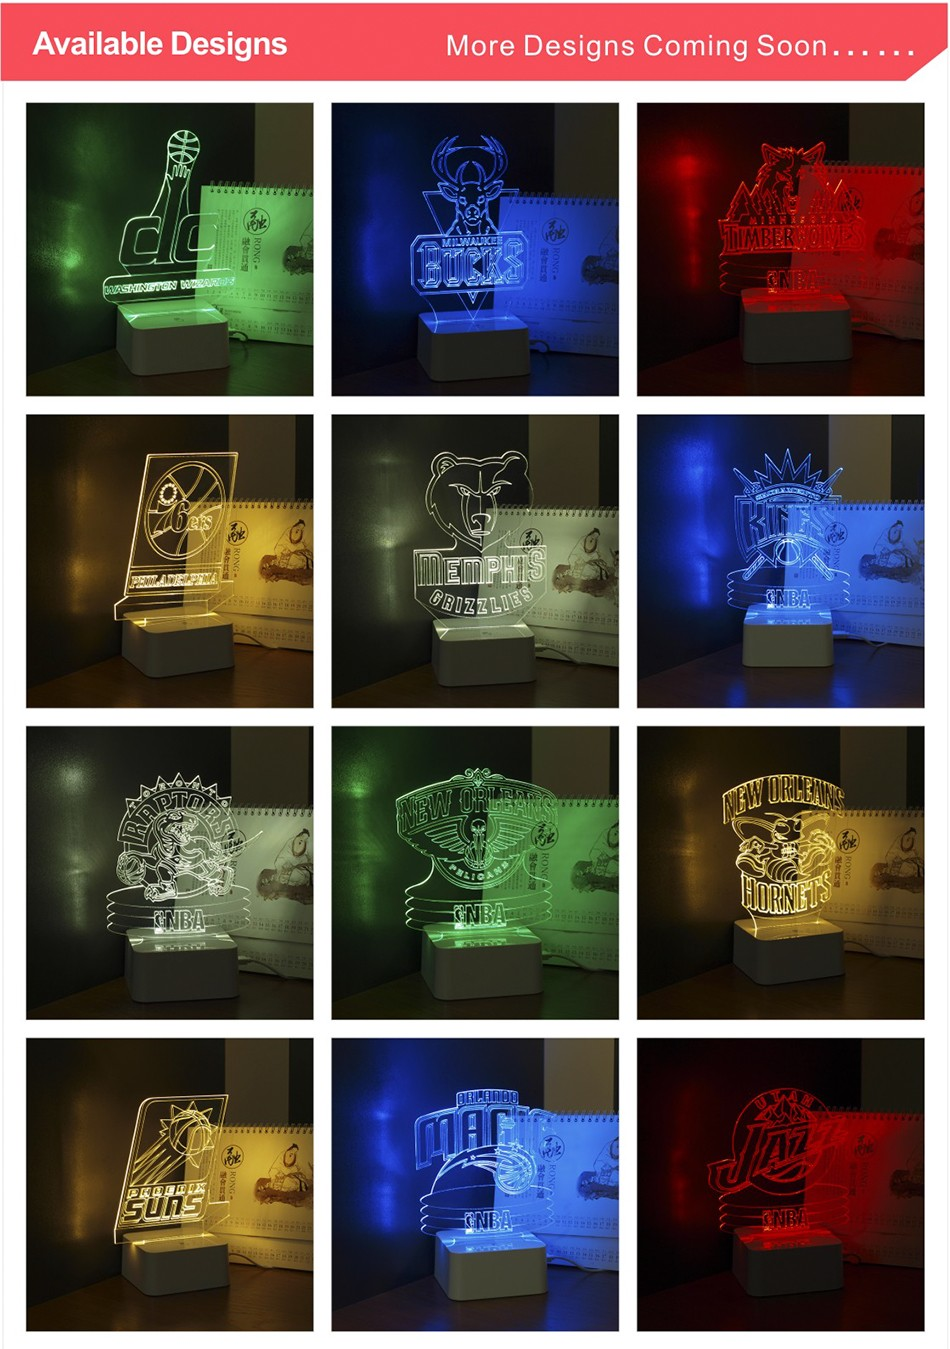 3D Lamp USB Novelty for Portland NBA Basketball Fans LED Night Light as Creative Gifts or Home Decor (6)